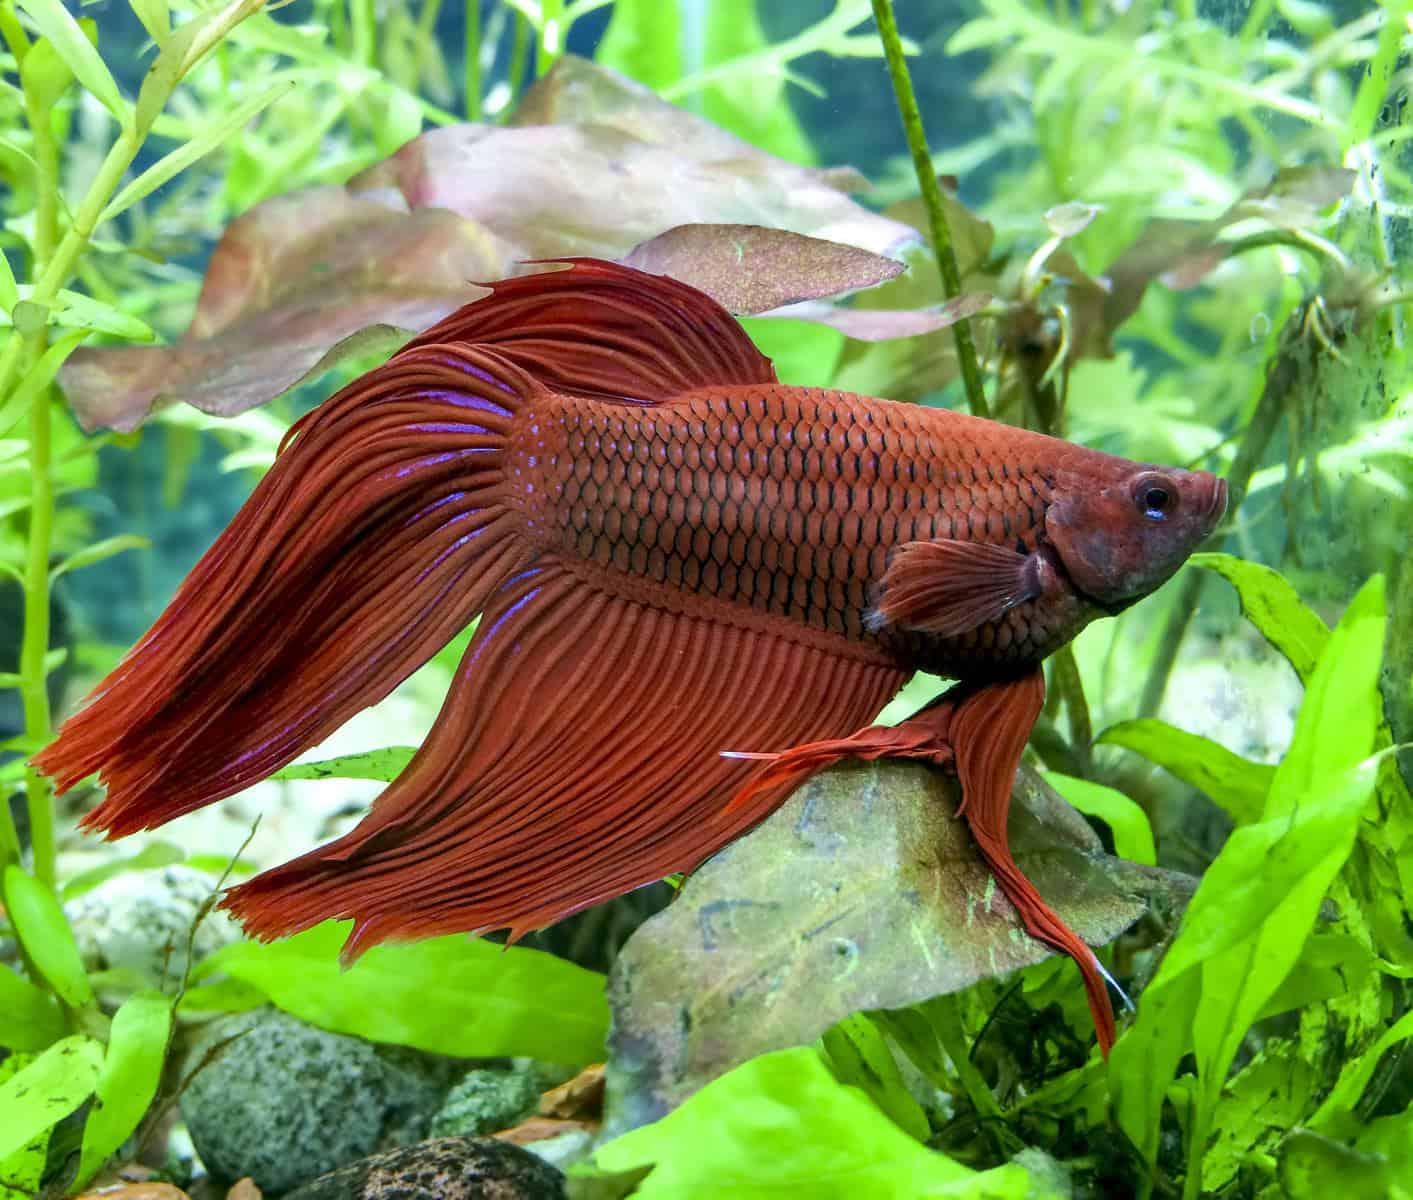 constipated betta fish in aquarium